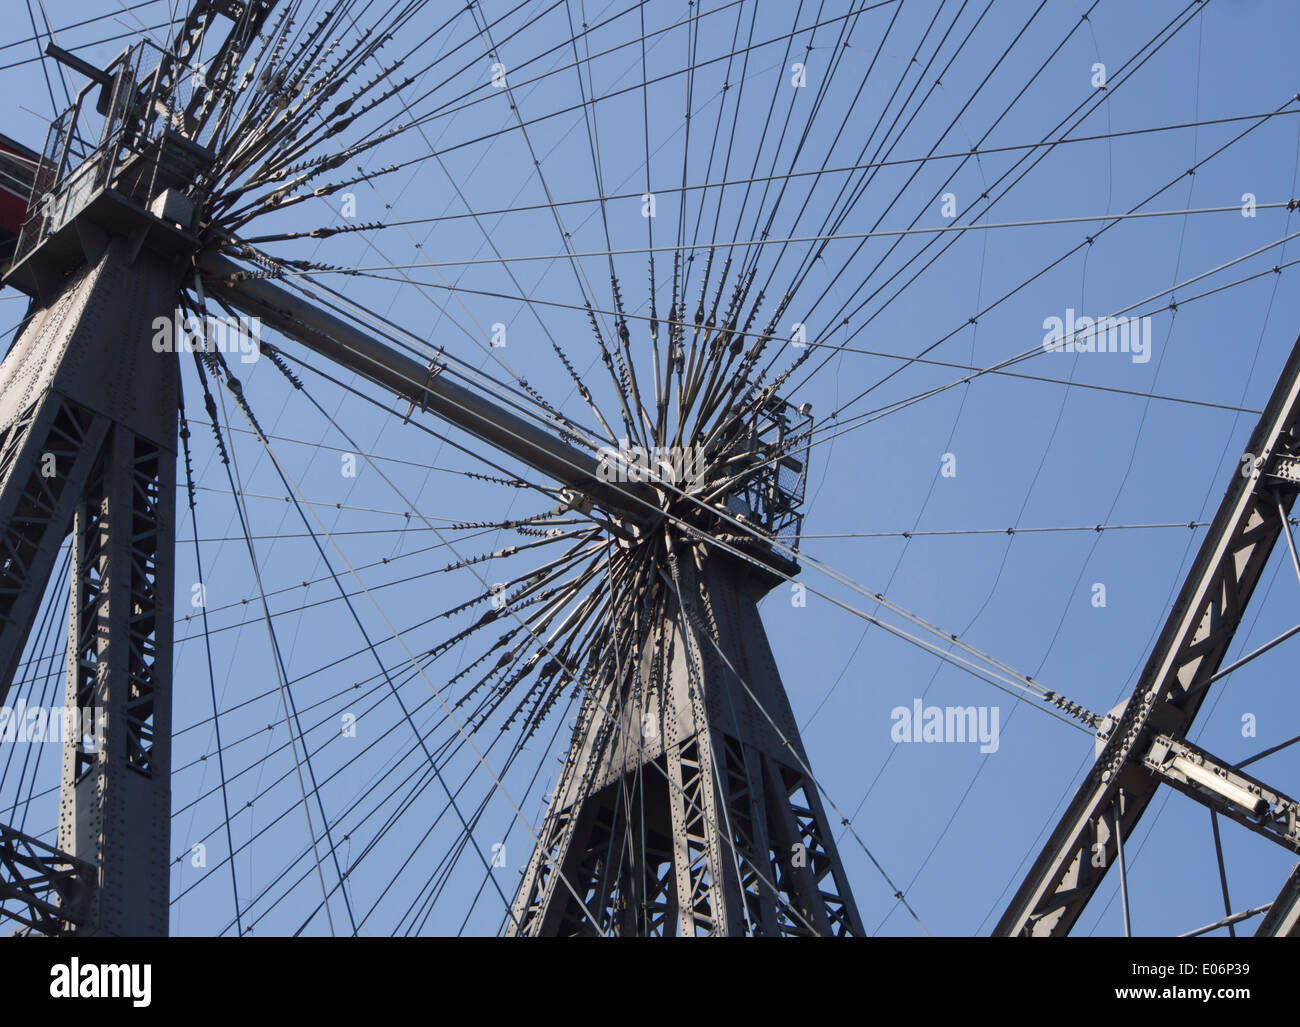 Wiener Riesenrad, ferris wheel in the Prater amusement park, constructed in 1897 about 65 meters high, Vienna Austria - Stock Image